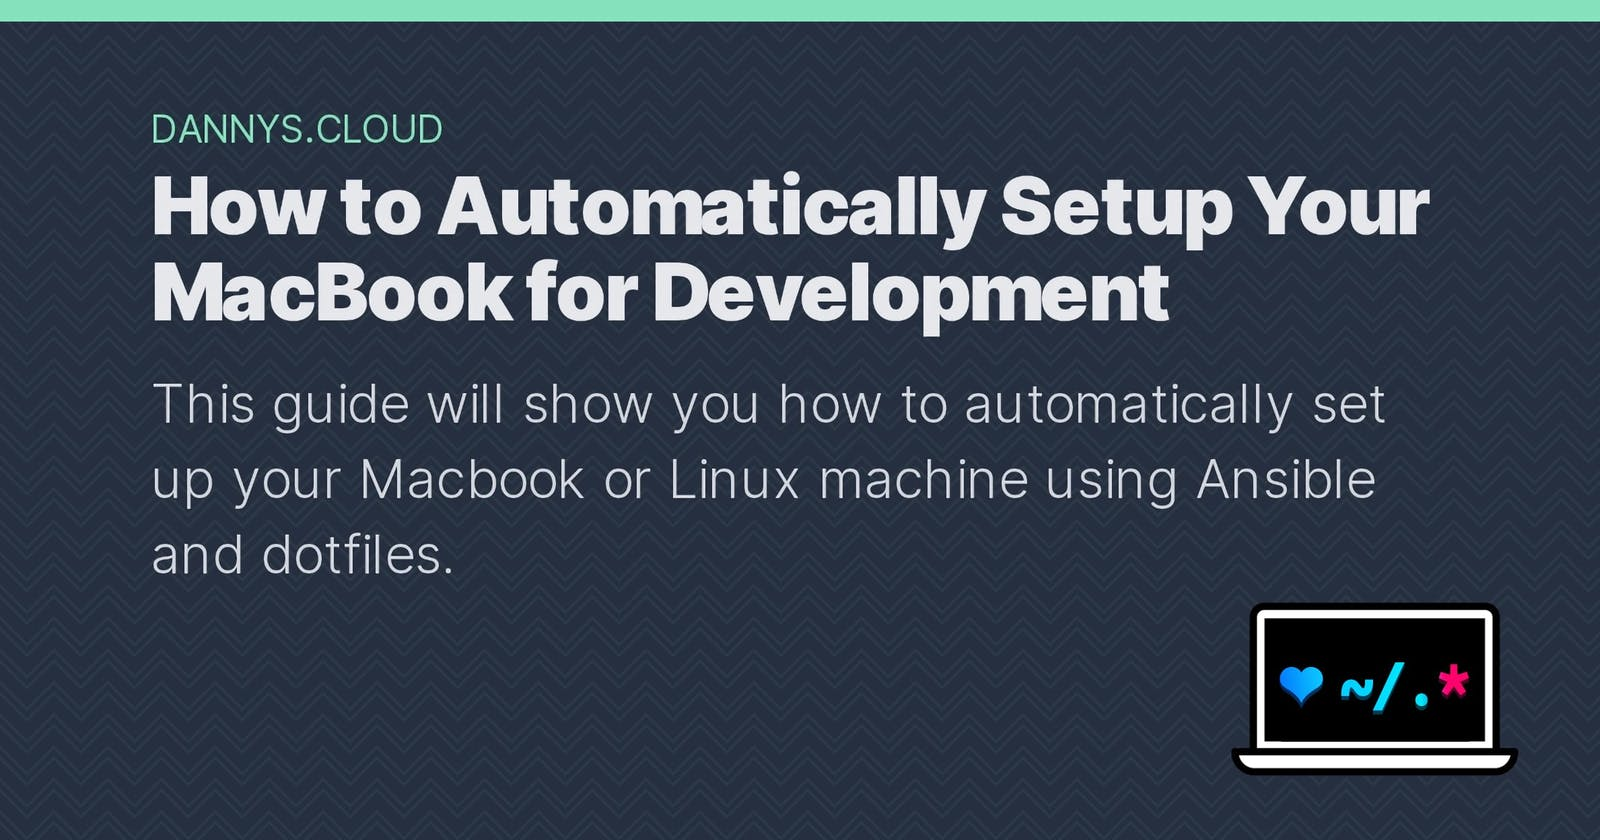 How to Automatically Setup Your MacBook for Development